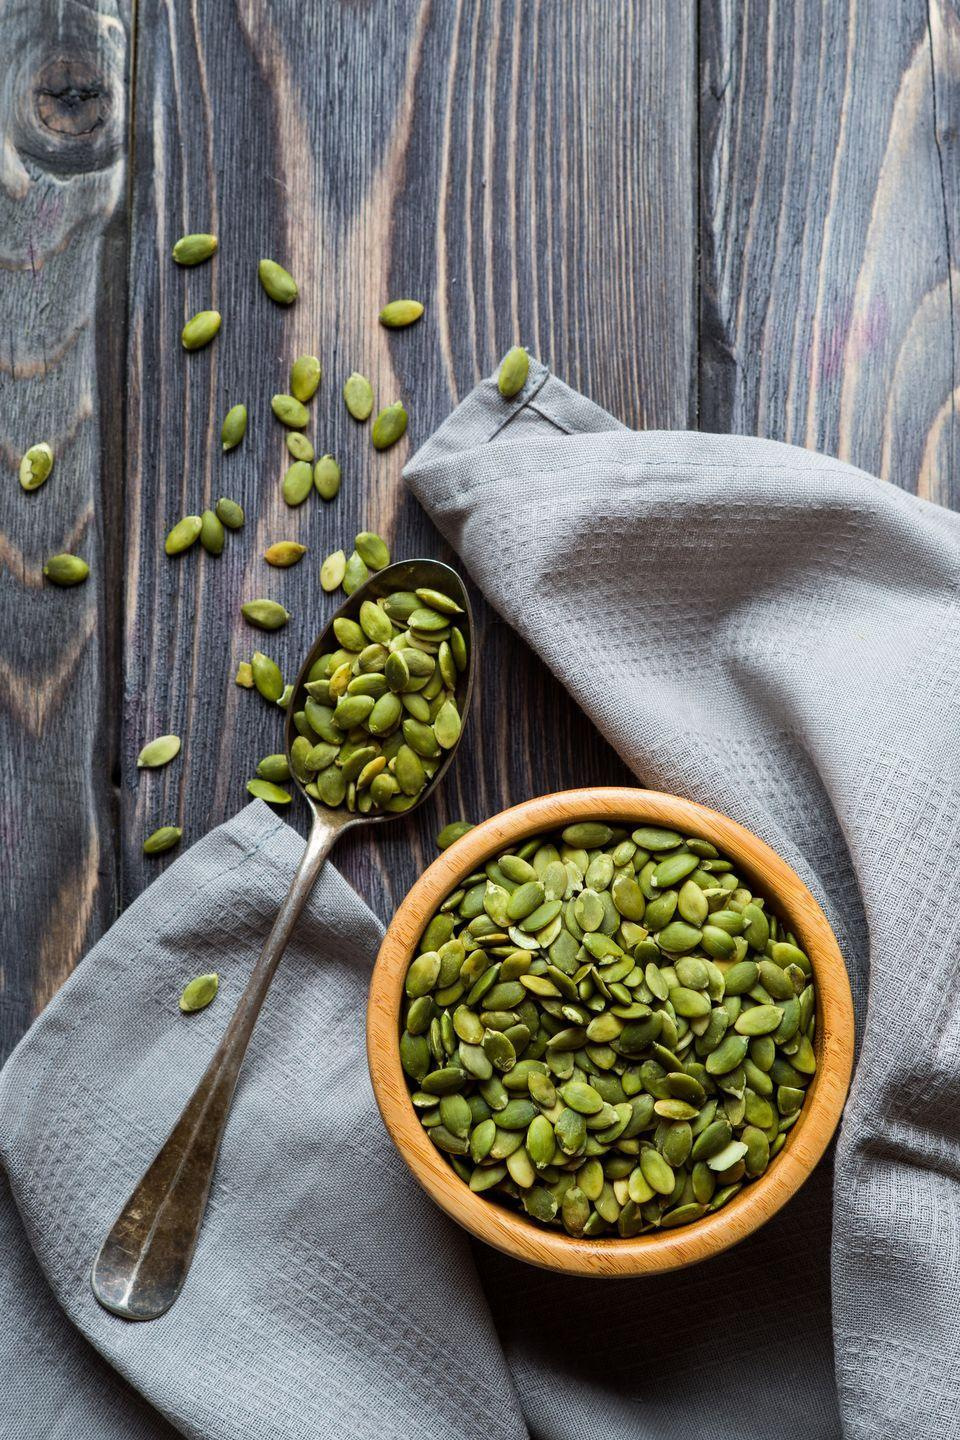 """<p>An ounce of <a href=""""https://www.goodhousekeeping.com/holidays/halloween-ideas/g2767/pumpkin-seed-recipes/"""" rel=""""nofollow noopener"""" target=""""_blank"""" data-ylk=""""slk:pumpkin seeds"""" class=""""link rapid-noclick-resp"""">pumpkin seeds</a> provides nearly 20% of your daily value of magnesium, plus potassium. Sprinkle these seeds (and nuts, like walnuts, peanuts, pistachios, and cashews) on your meals or snack on 'em plain for a nutrient boost. <br></p>"""